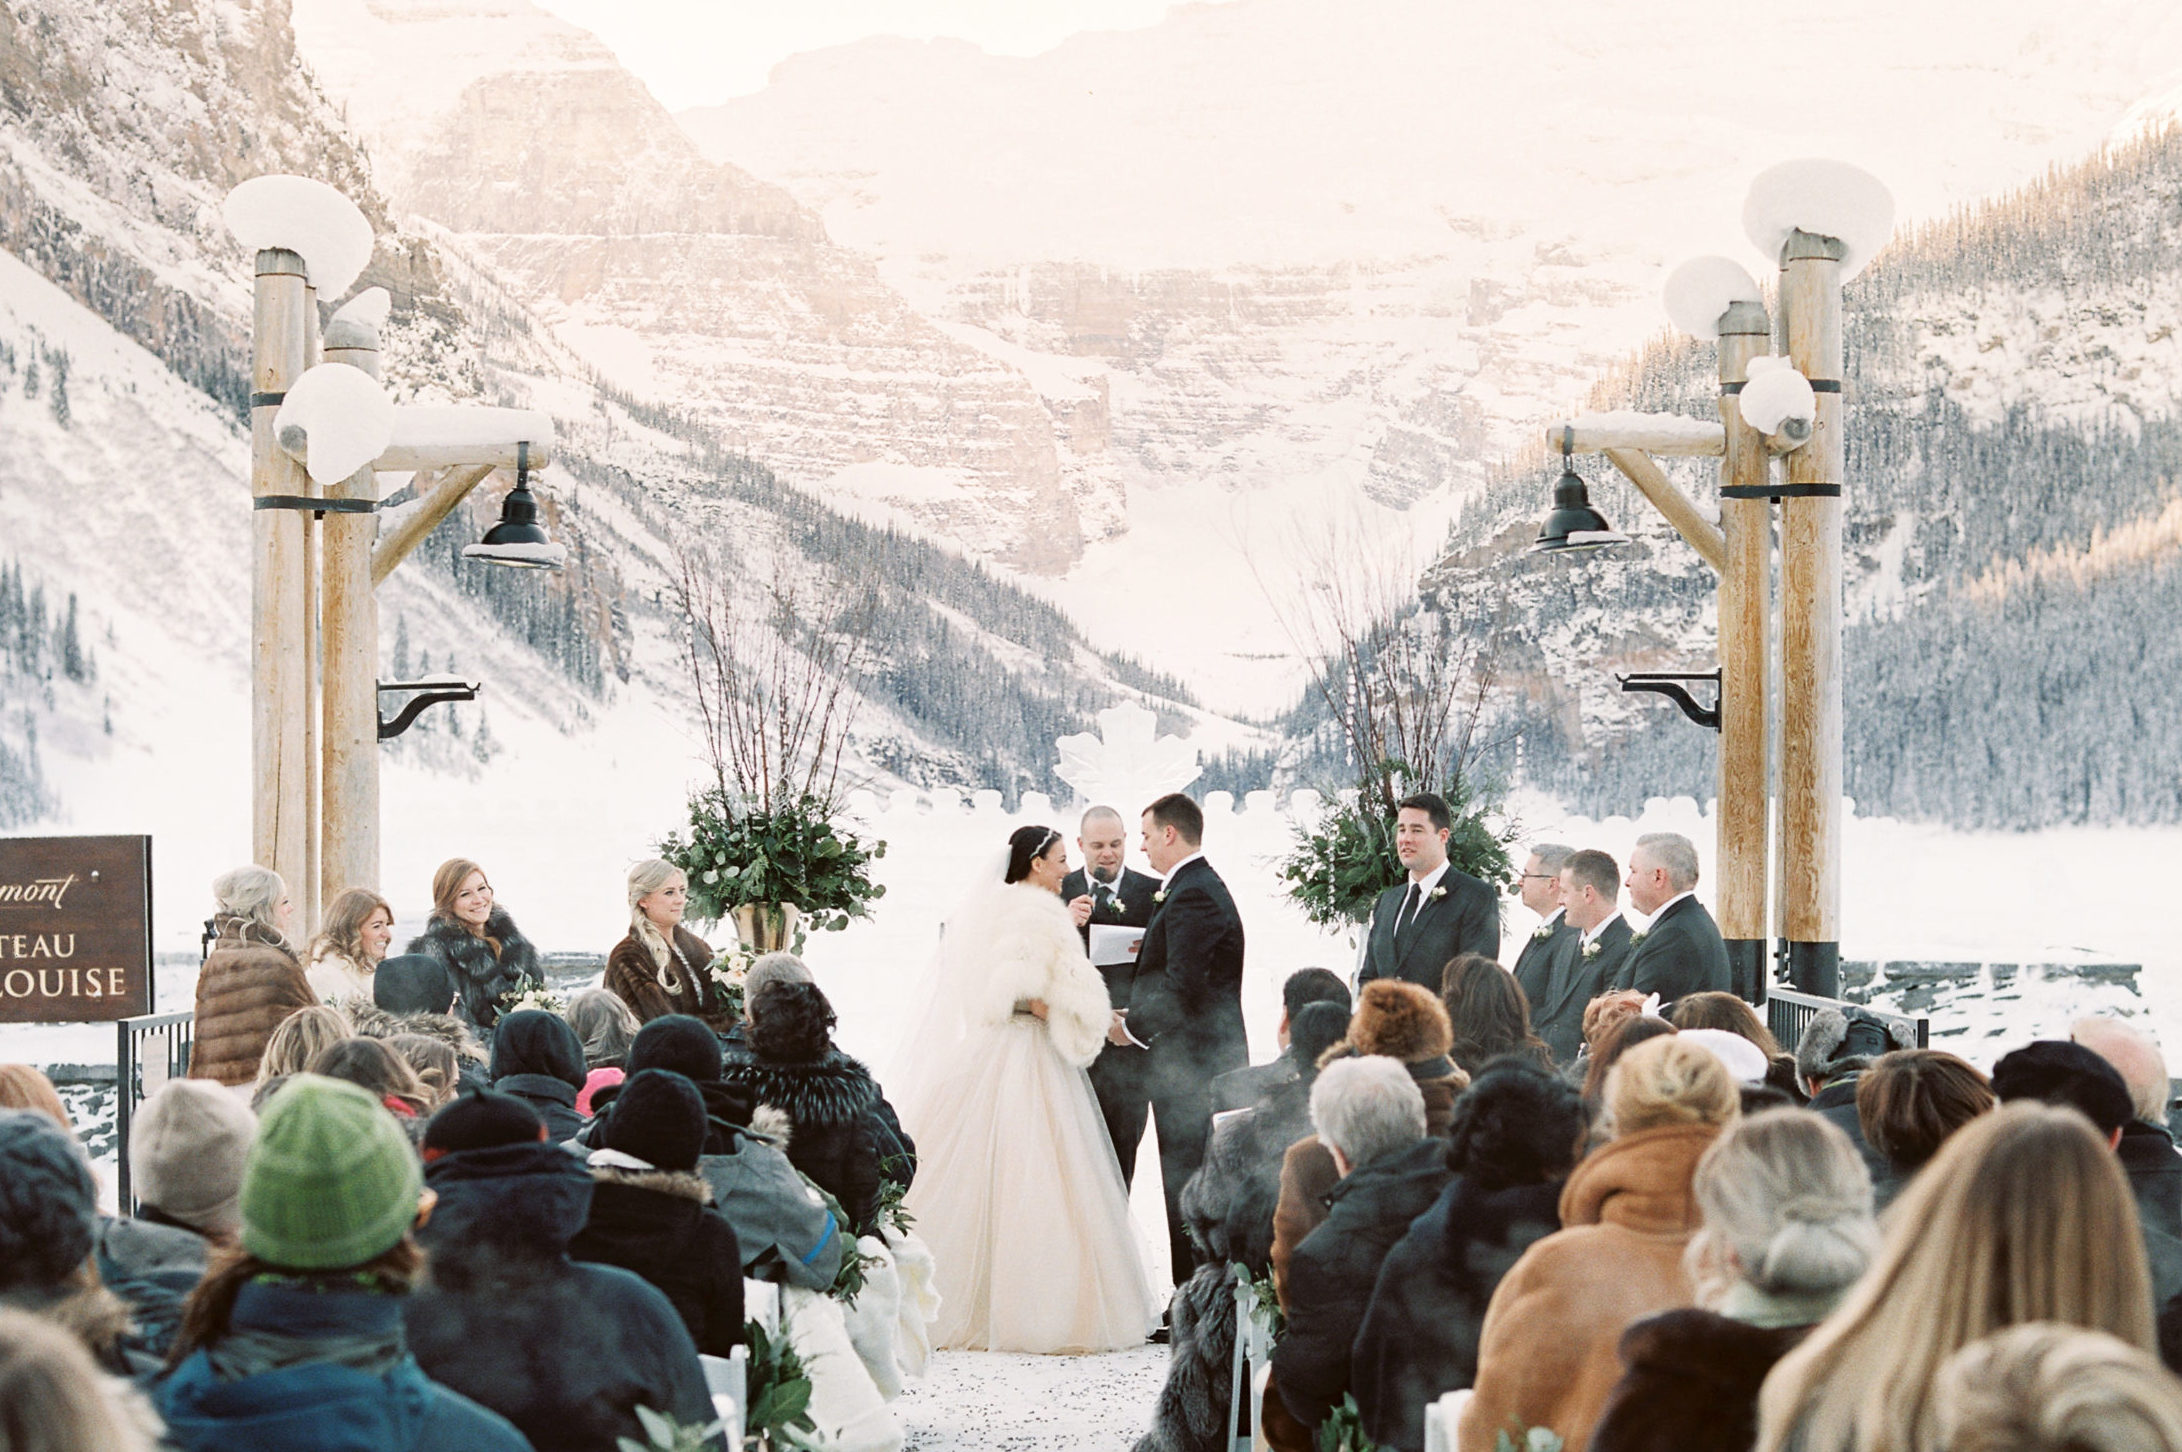 winter wedding at lake louise - Photo credit Reid Lampshead